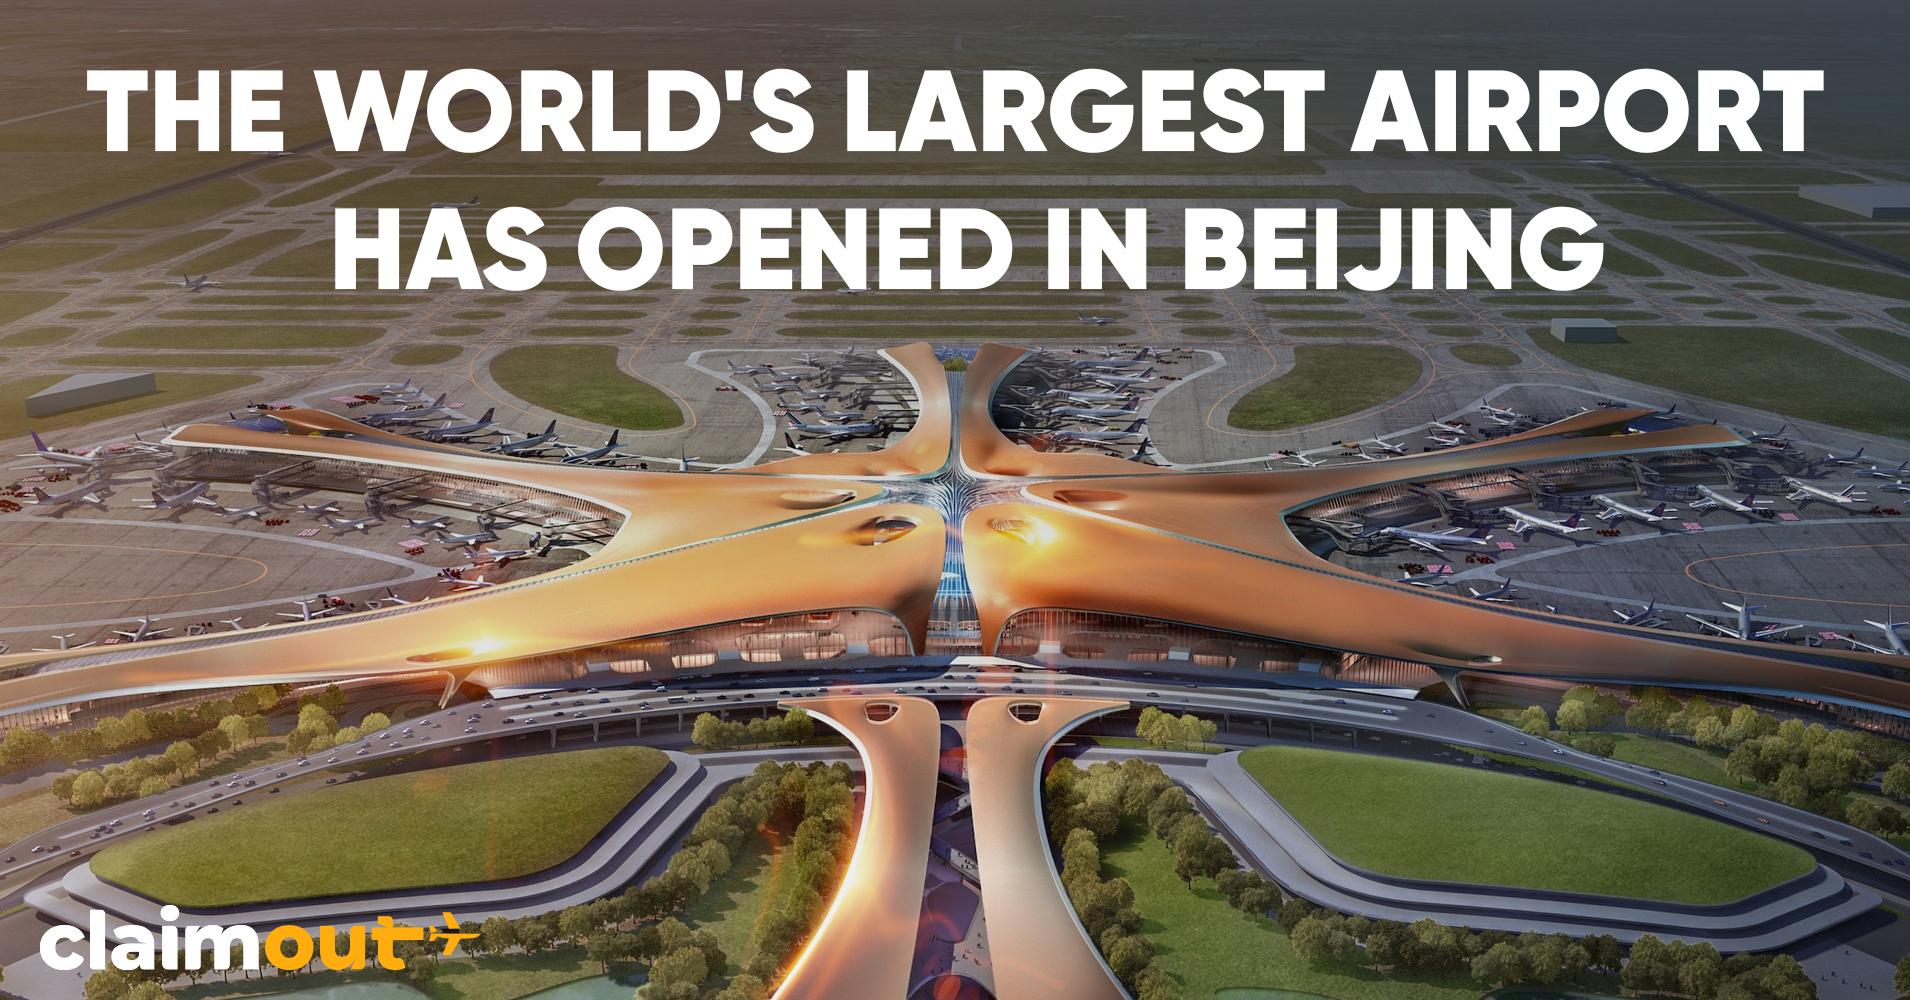 The world's largest airport